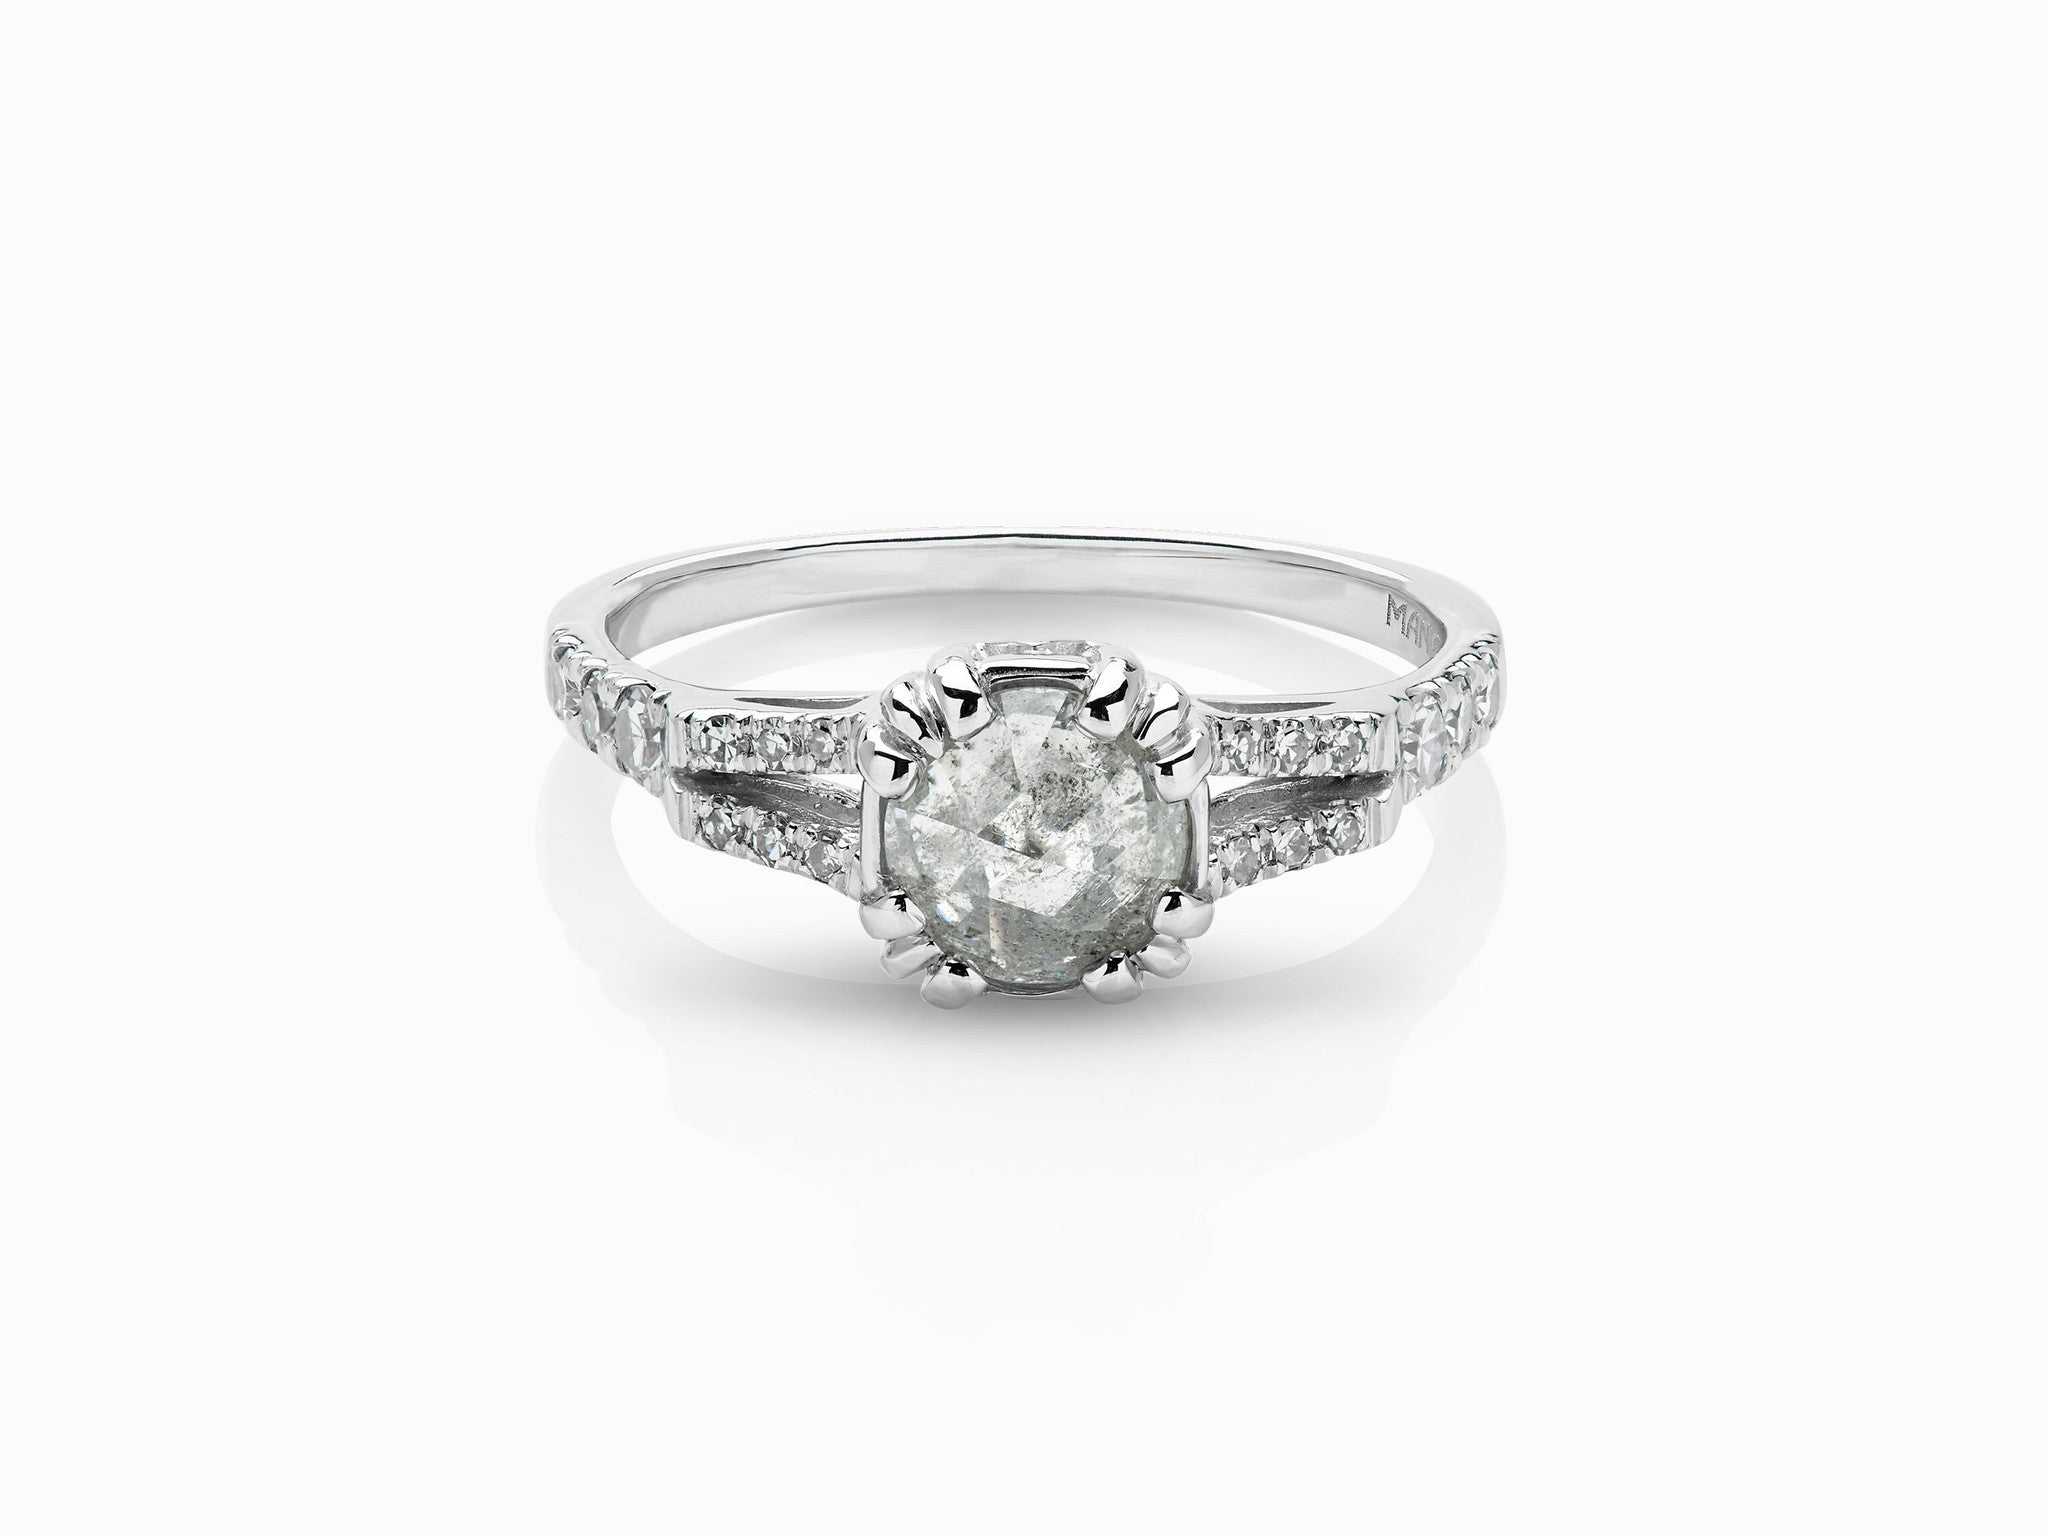 Beloved Solitaire Ring - Rustic White Diamond